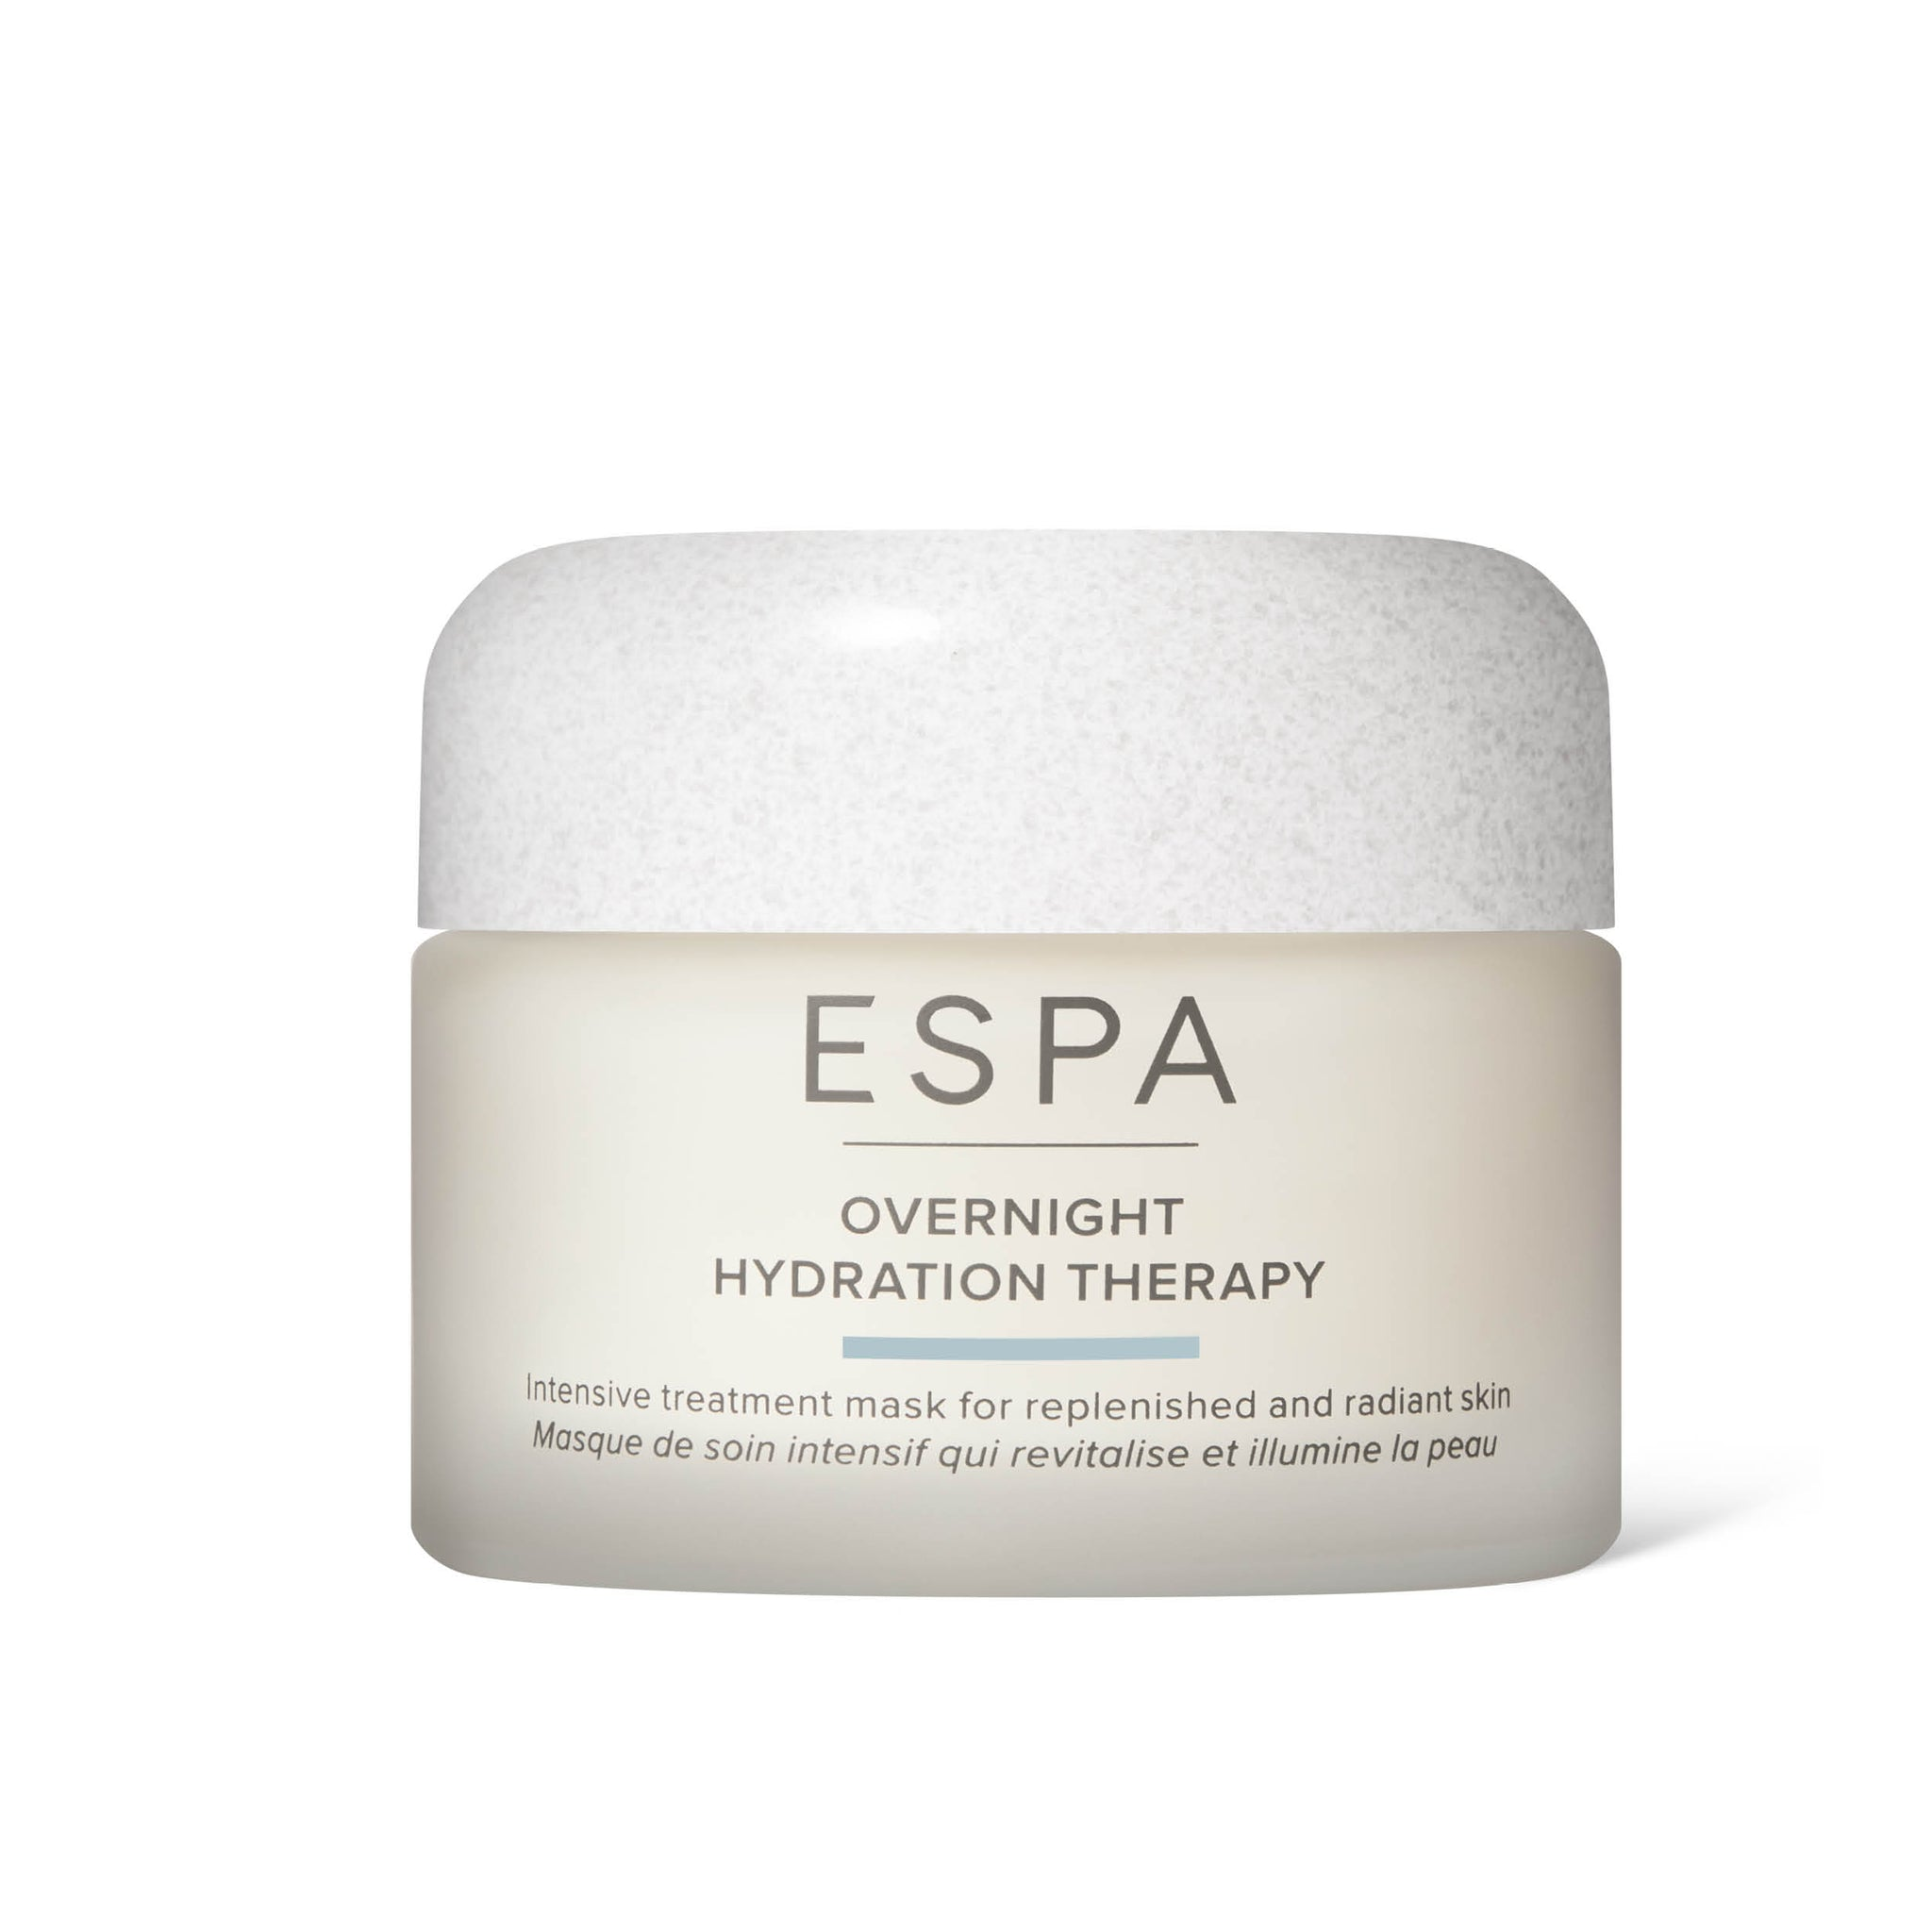 ESPA Overnight Hydration Therapy Mask